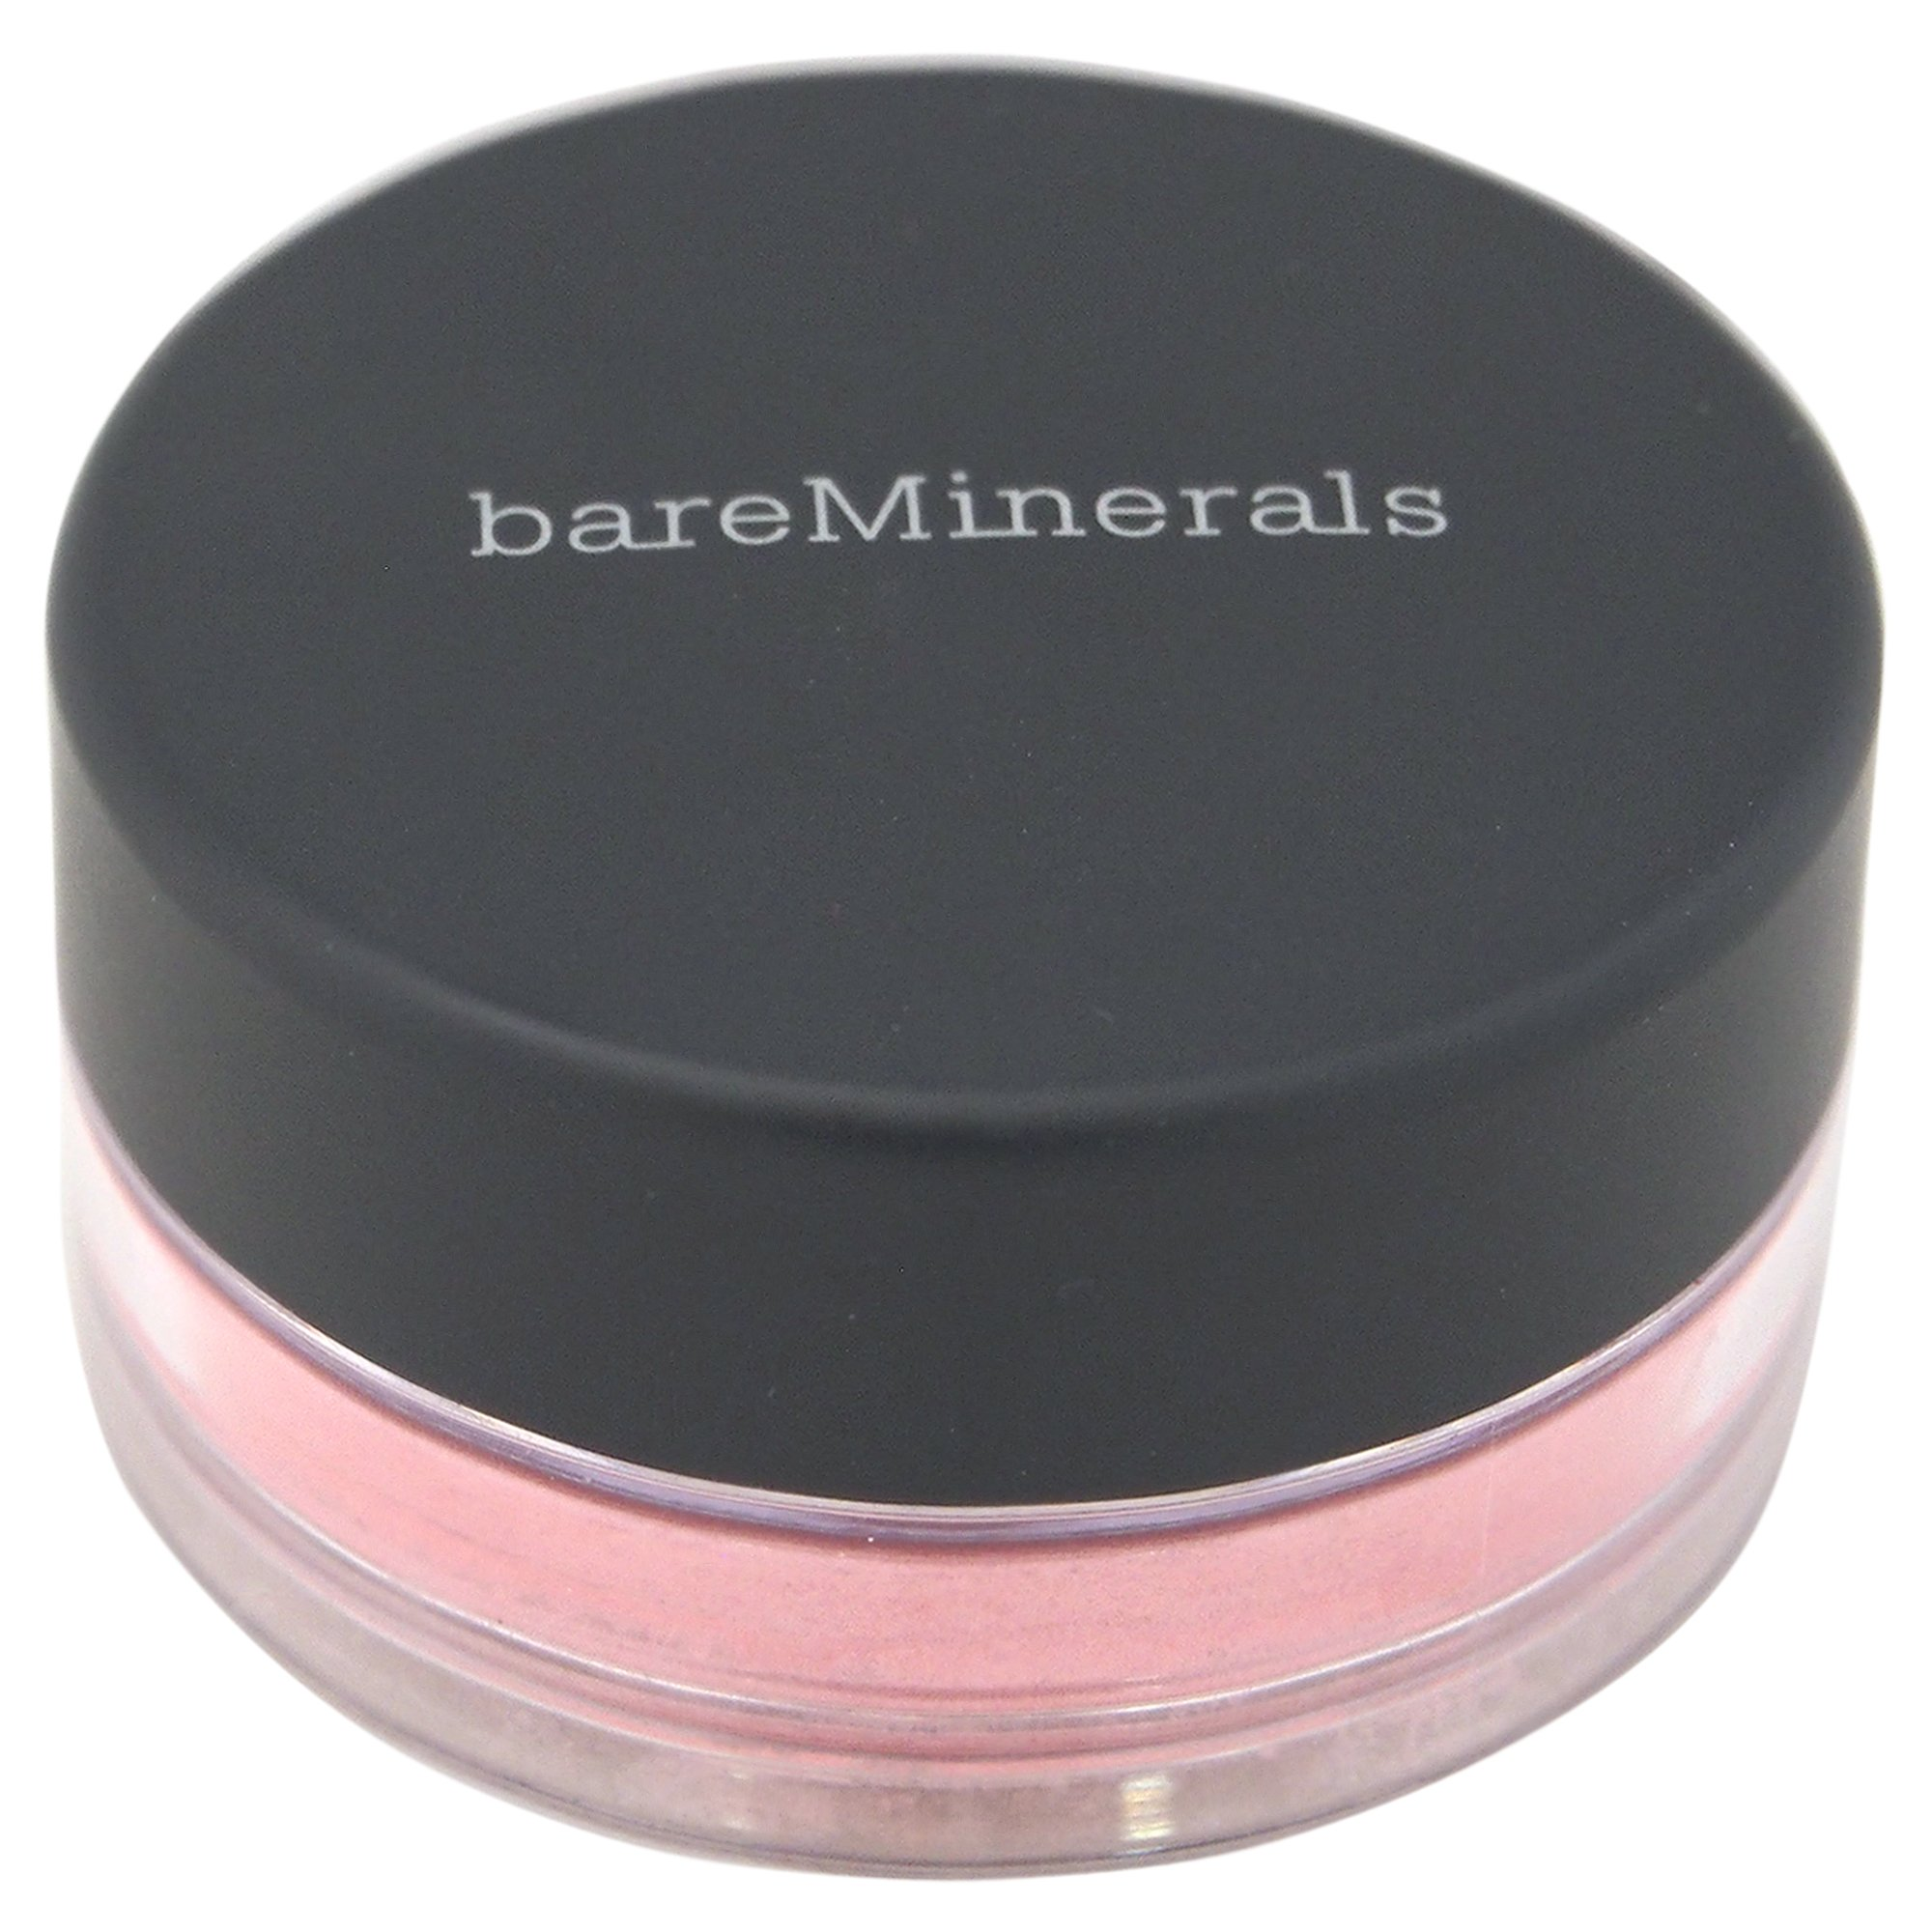 Bare Minerals Blush Highlighter, Giddy Pink, 0.03 Ounce